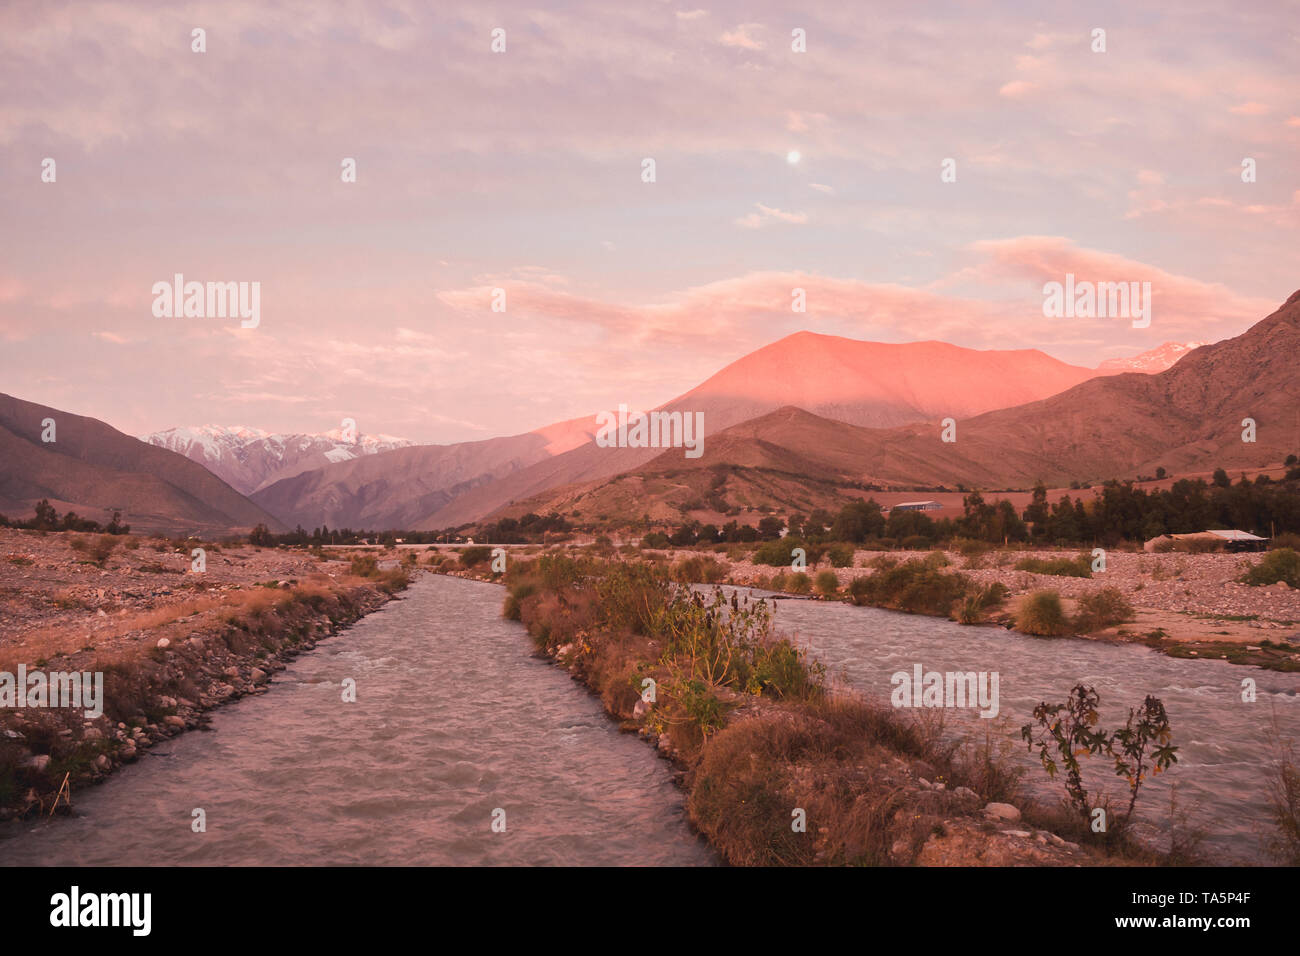 View of the Andes mountain range as seen from Vicuña in the Elqui Valley during the sunset sunrise in Chile - Stock Image